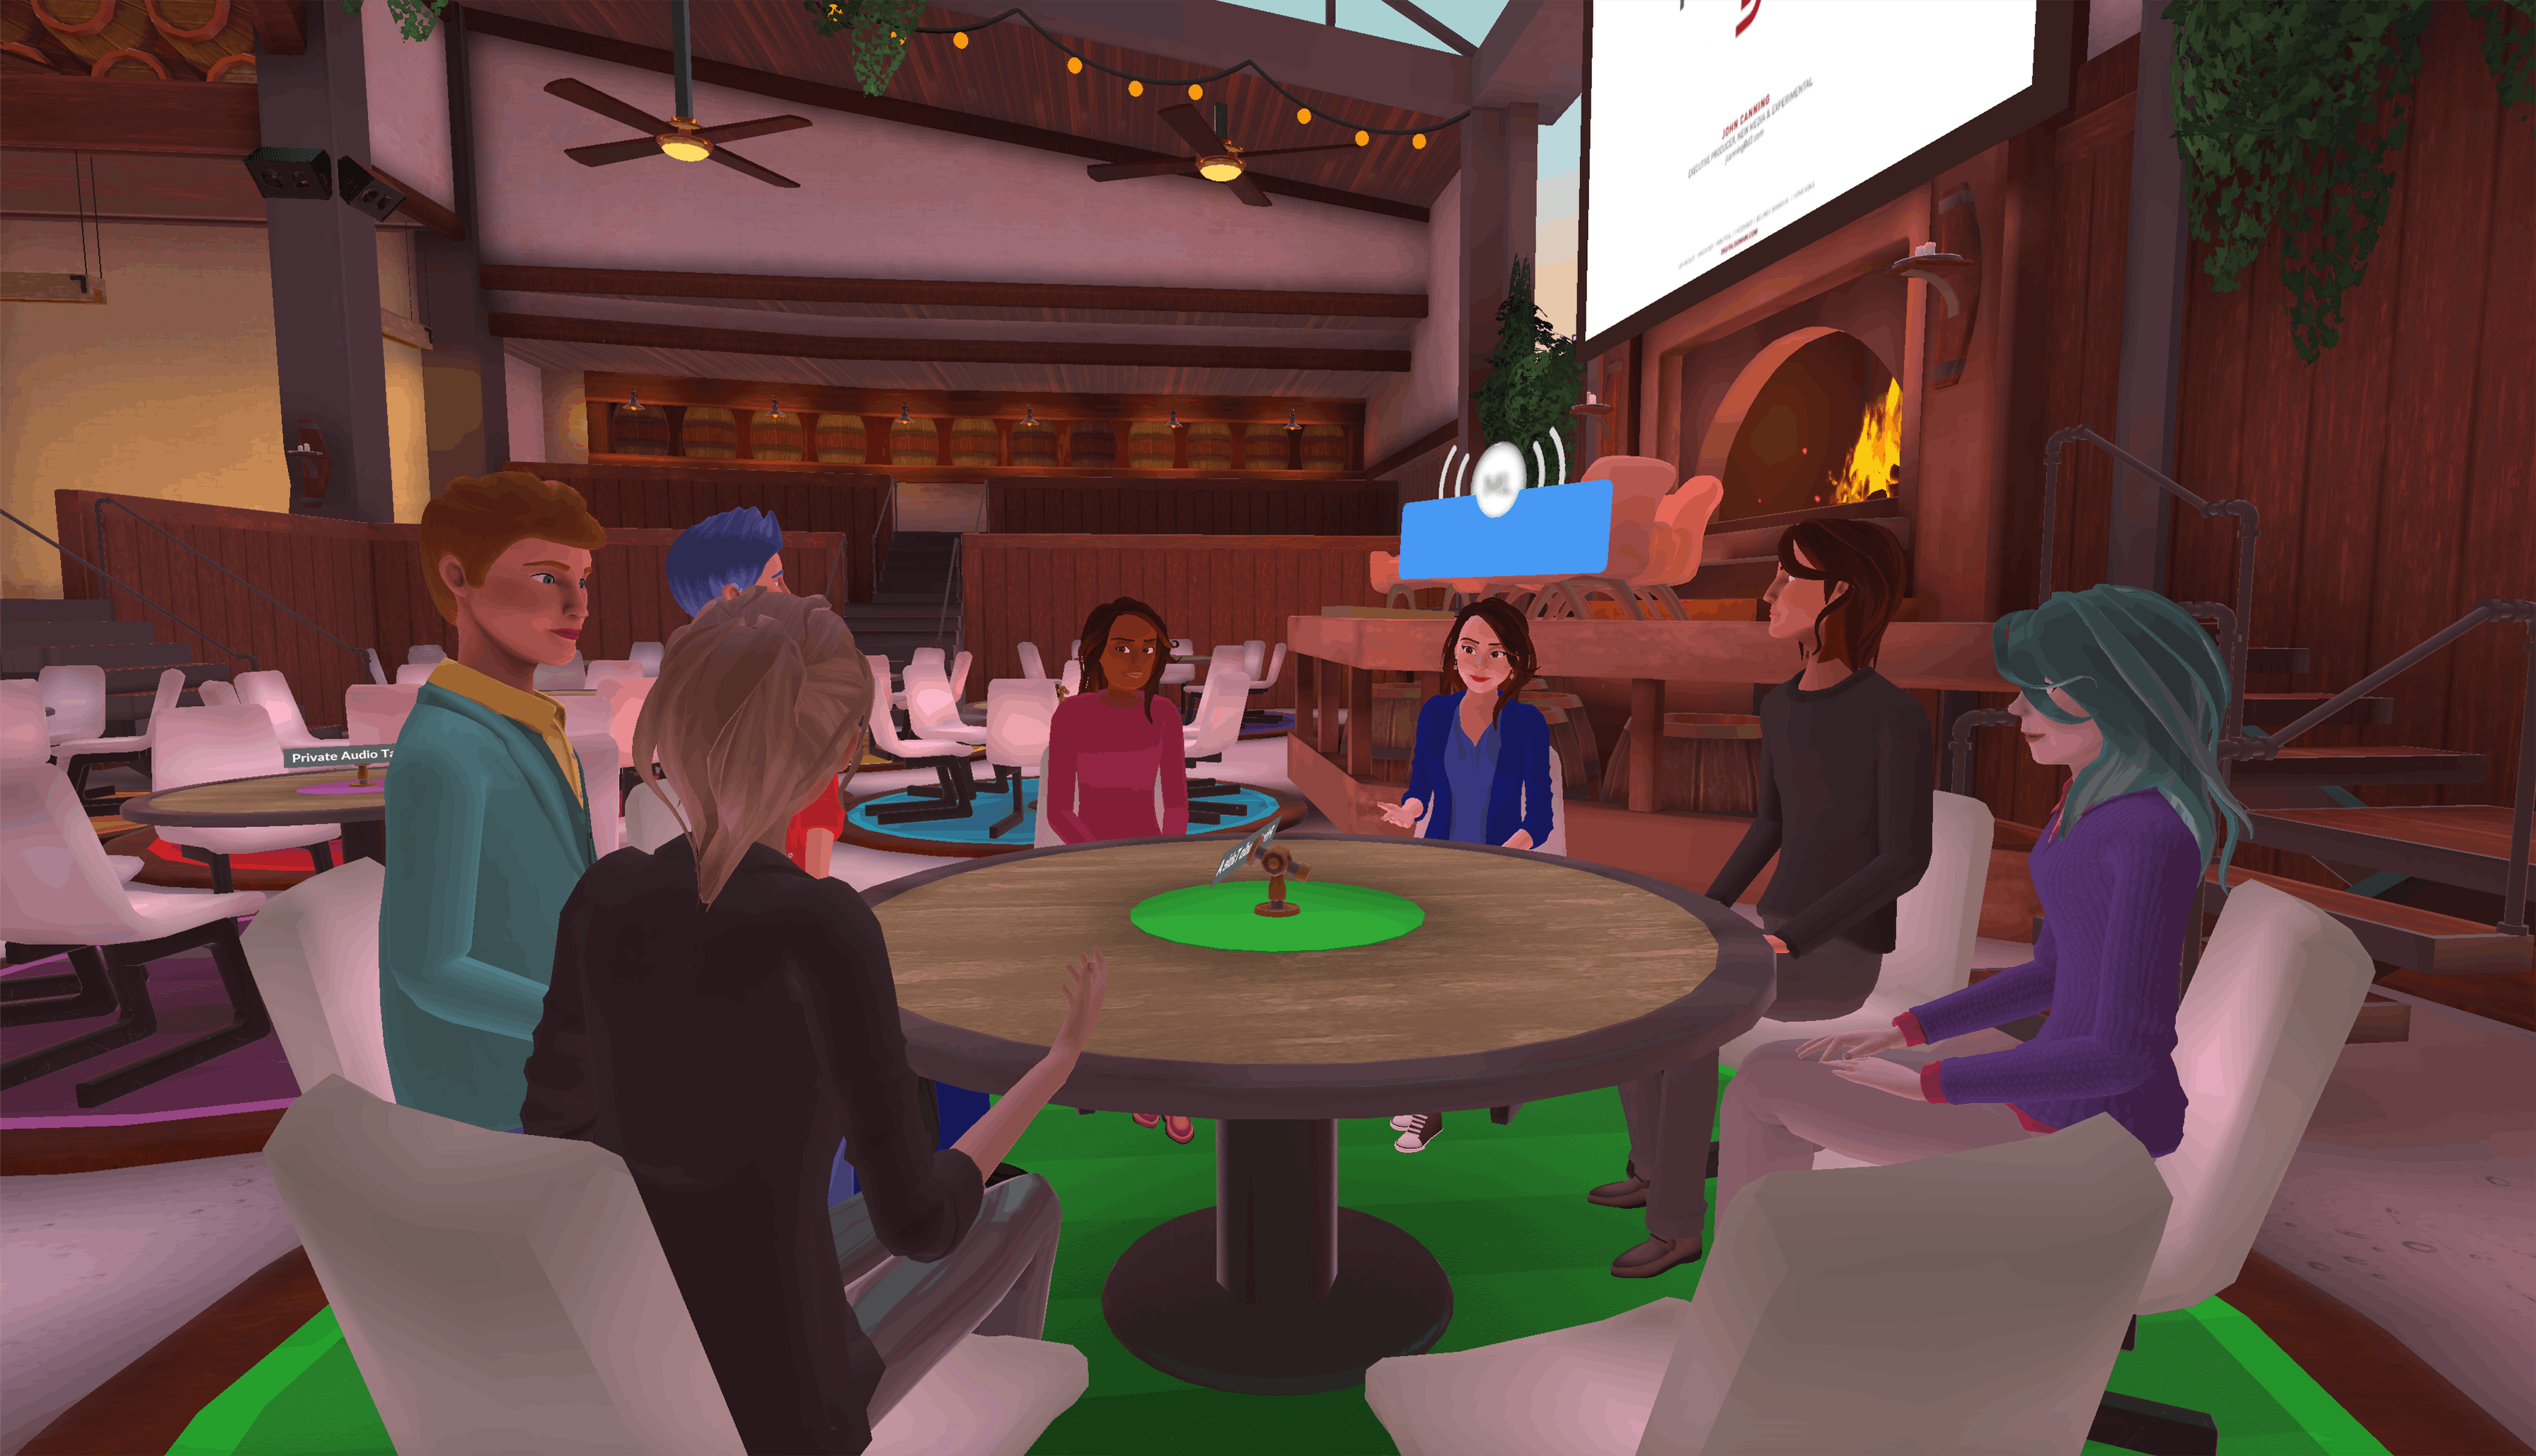 team meet-ups in Teooh's avatar based virtual reality platform